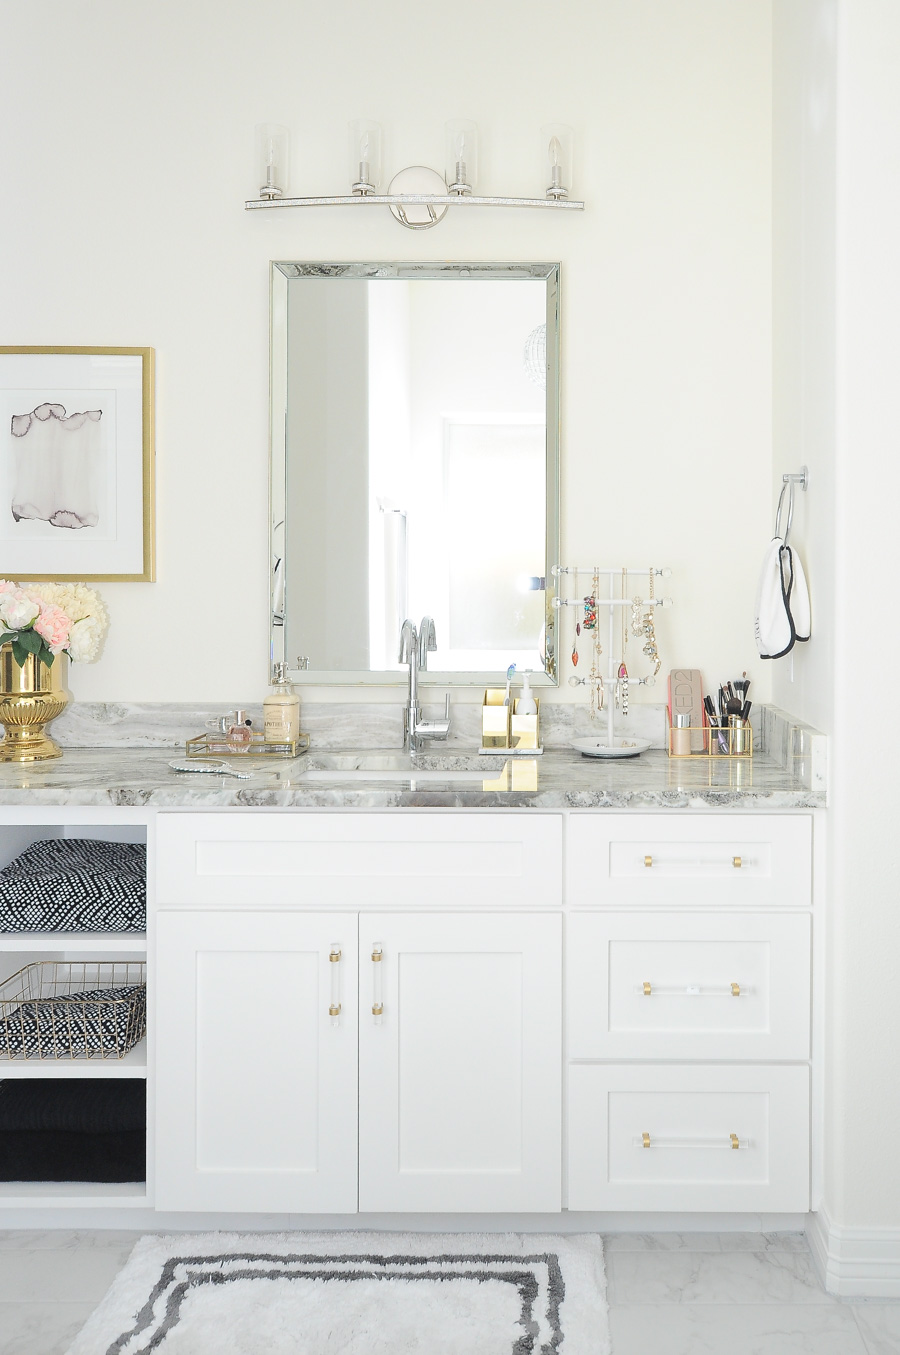 Beautiful white shaker cabinets with brass and gold lucite pulls styled to perfection in this bright white and gold master bathroom. I love the open shelving for towels and the gorgeous mirror and crystal lighting!